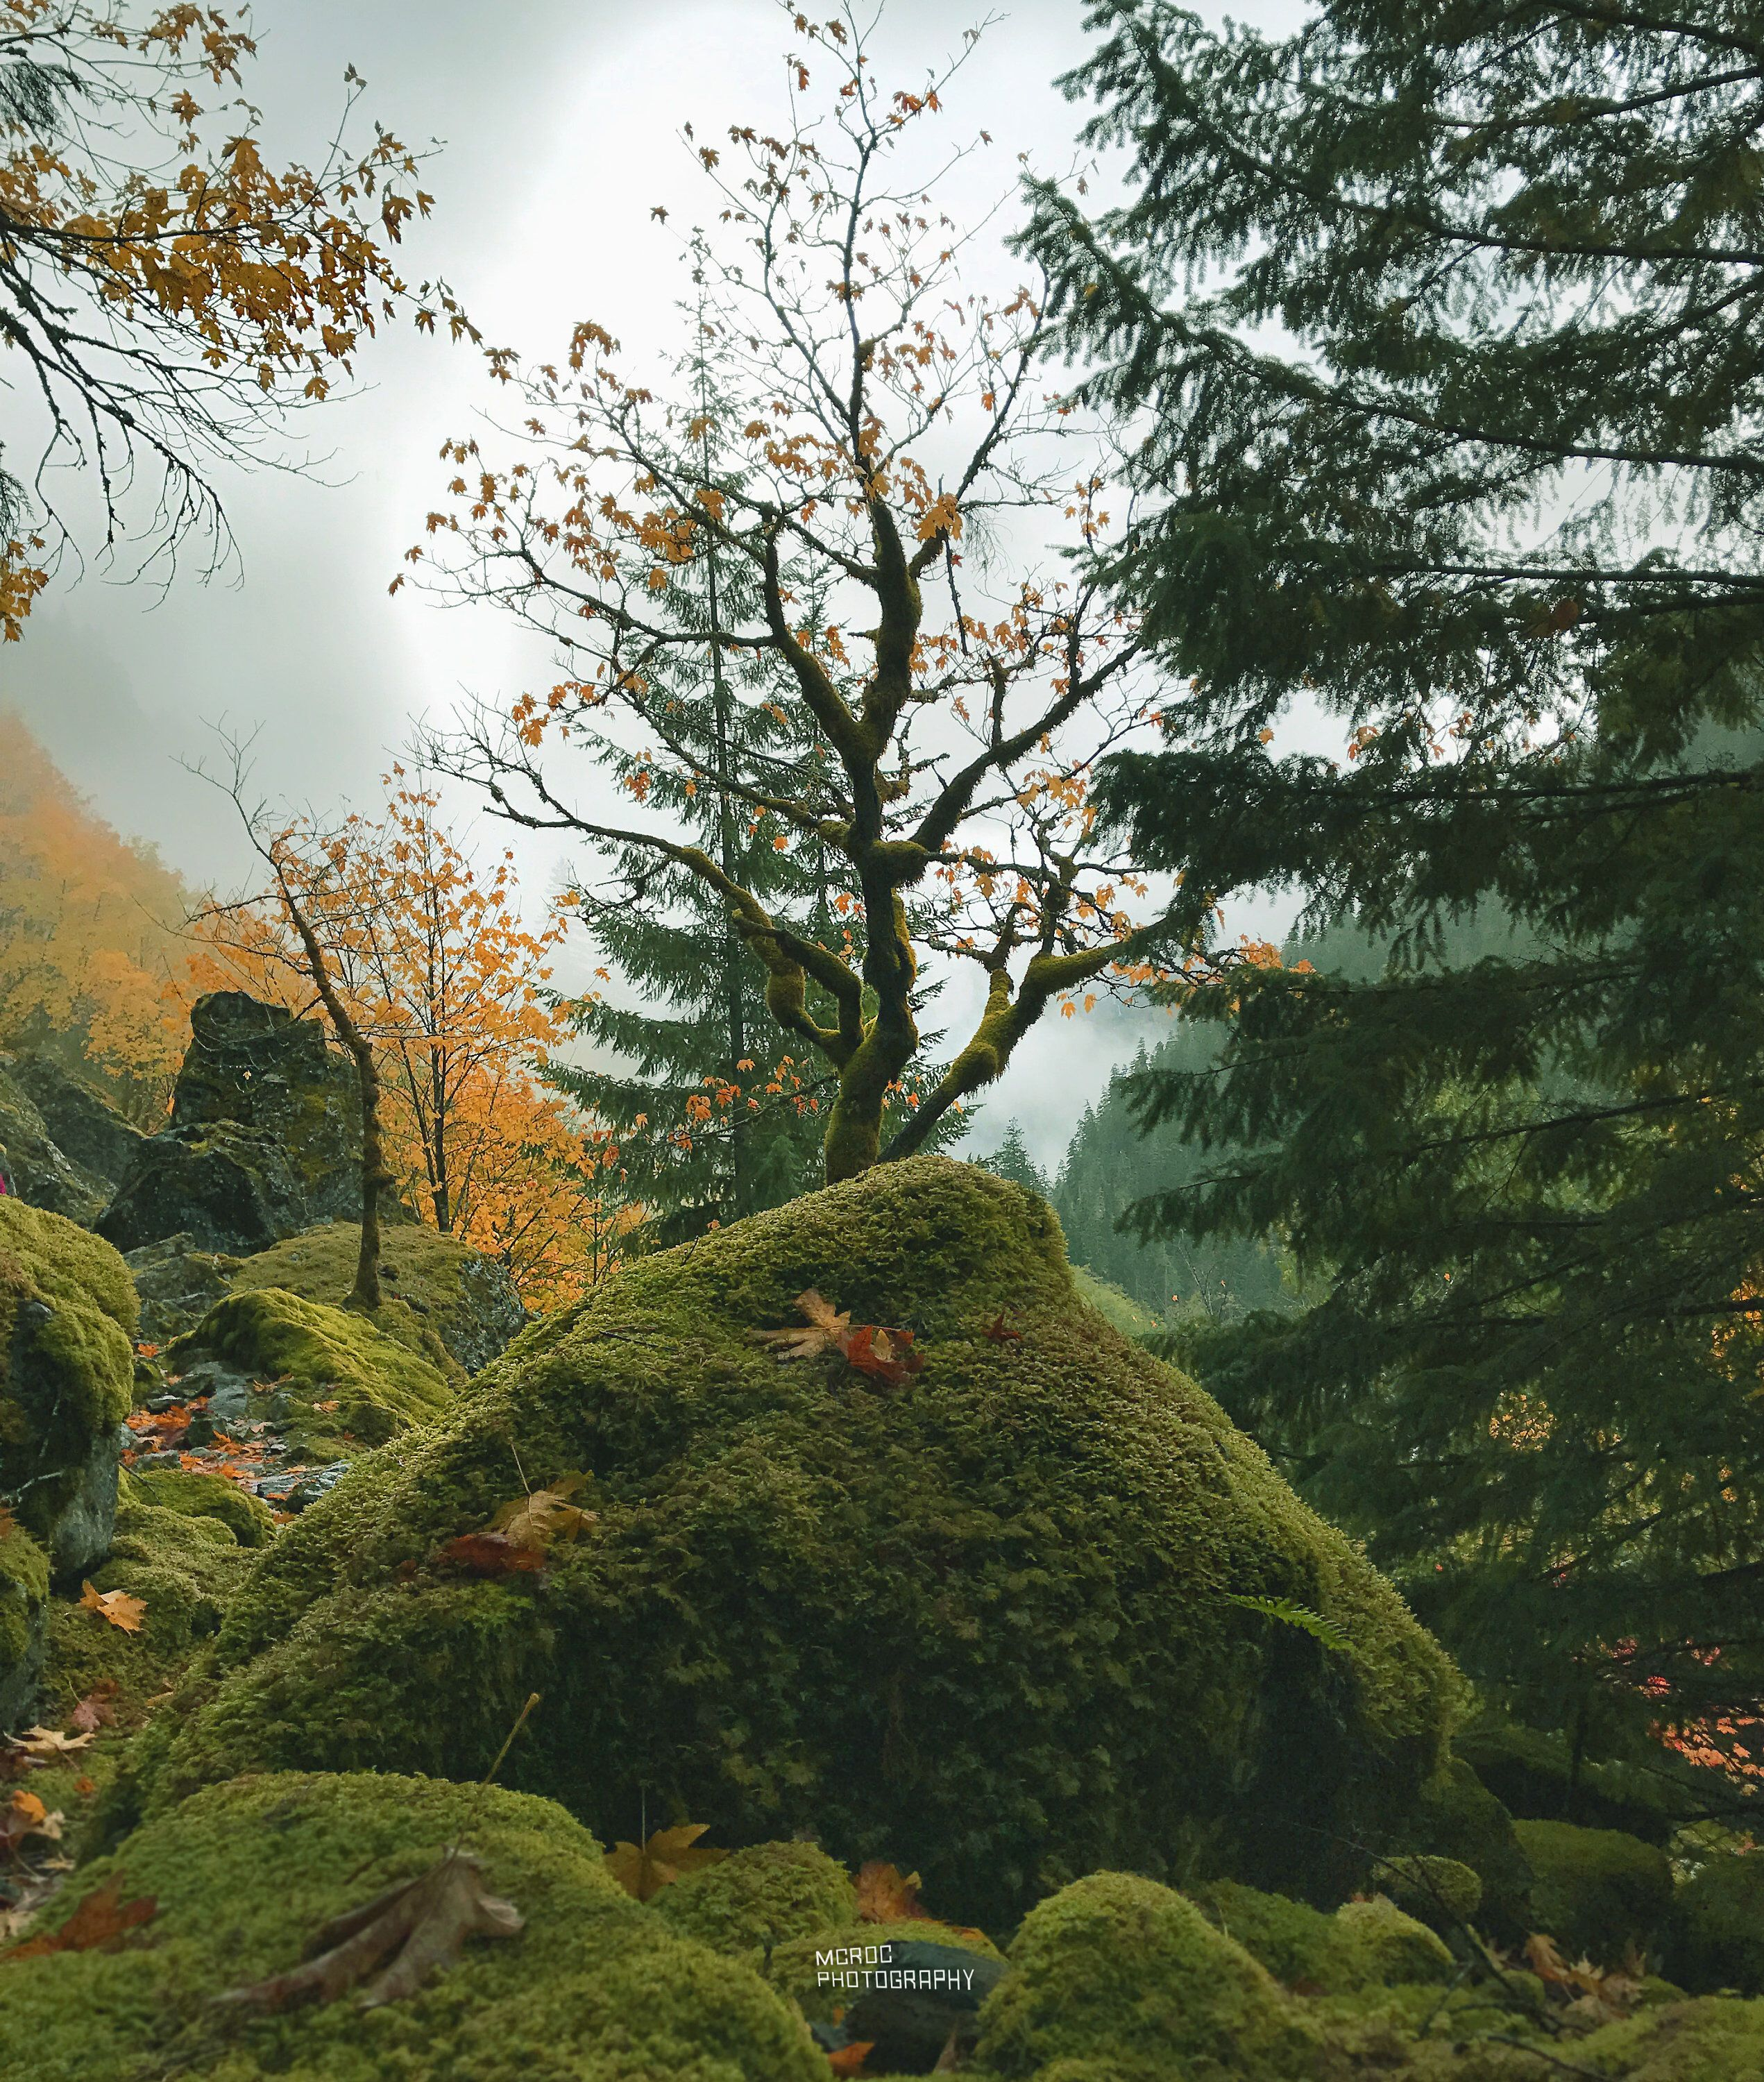 Mythical Glen Mossy Rocks And Trees Mountain Landscape Twisted Tree Photo Fi Nature Photography Beautiful Photography Nature Photography Inspiration Nature